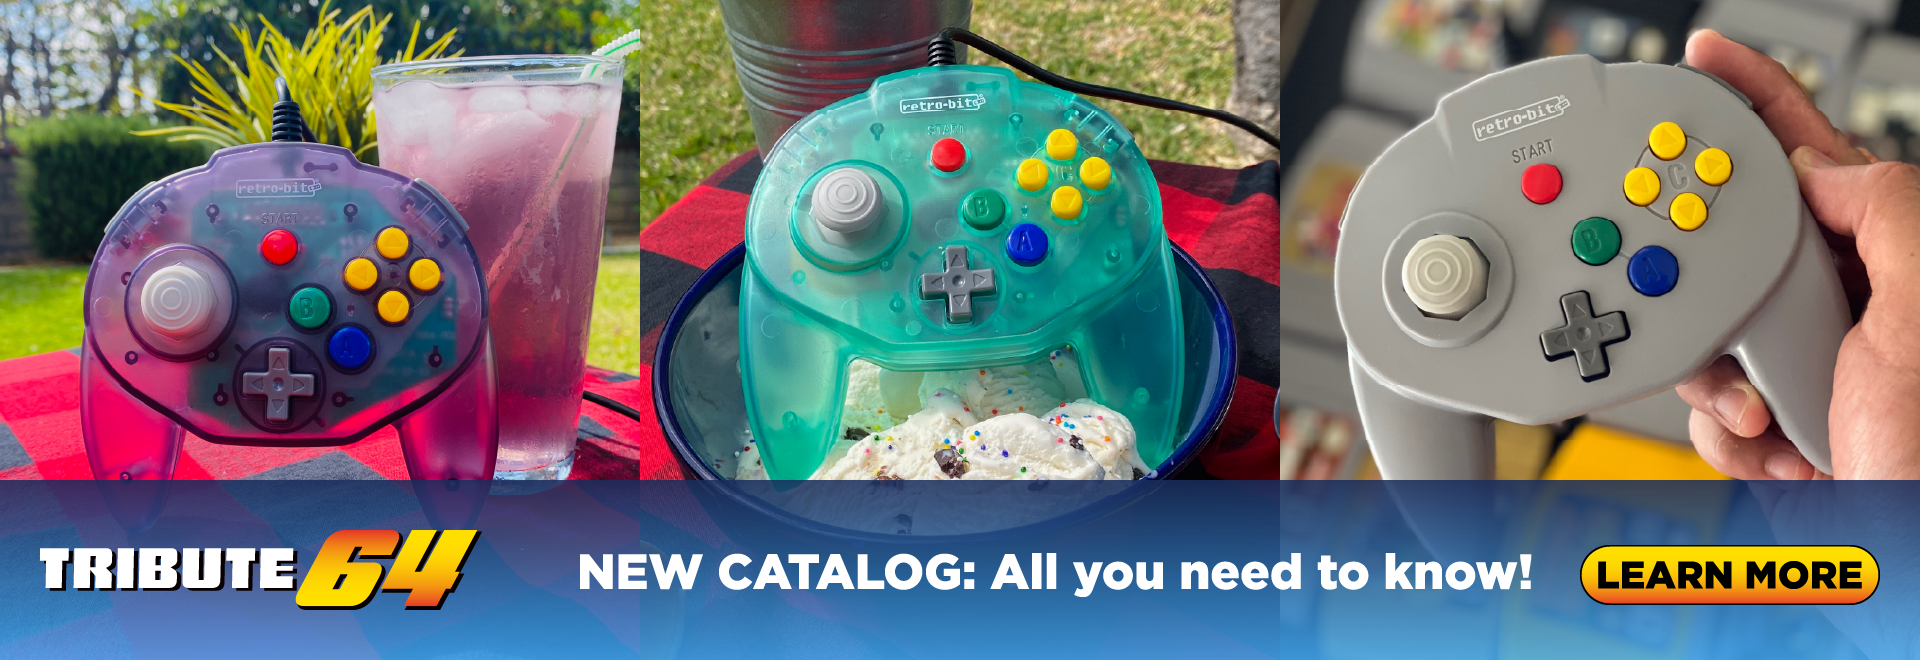 NEW Tribute64 catalog ready to view!